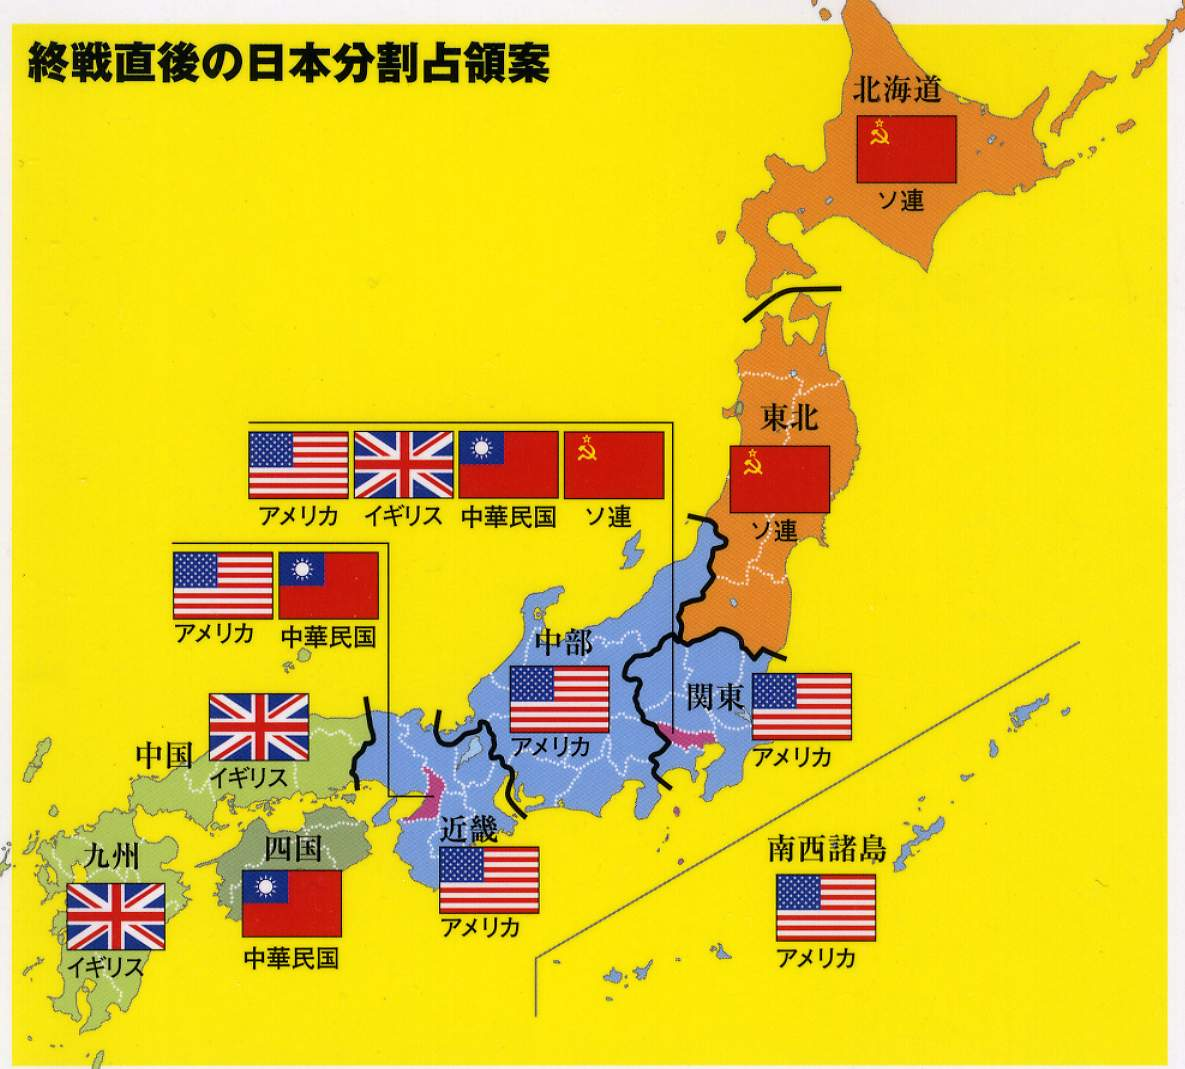 A proposed 4-way partition of Japan following World War 2